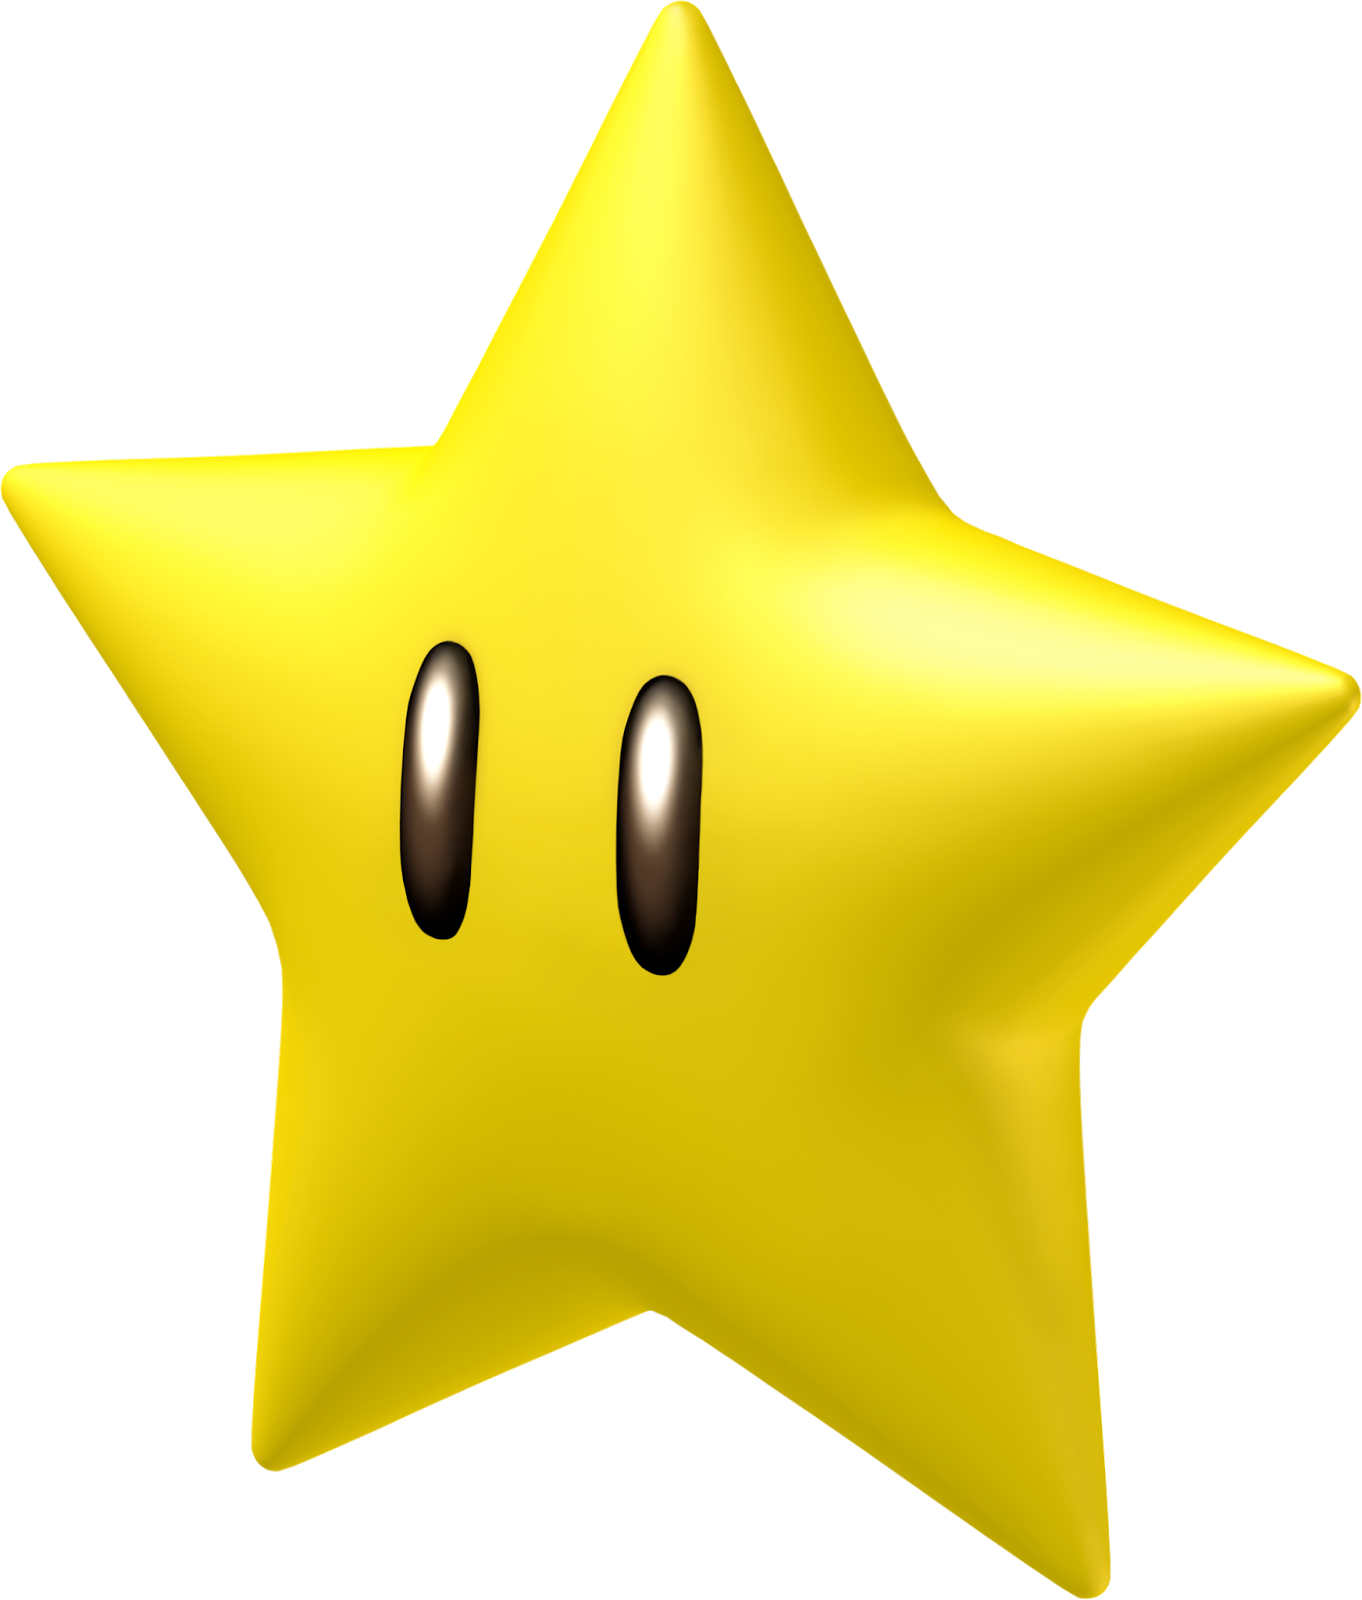 Mario Angle Super Star Bros Free Download PNG HD PNG Image